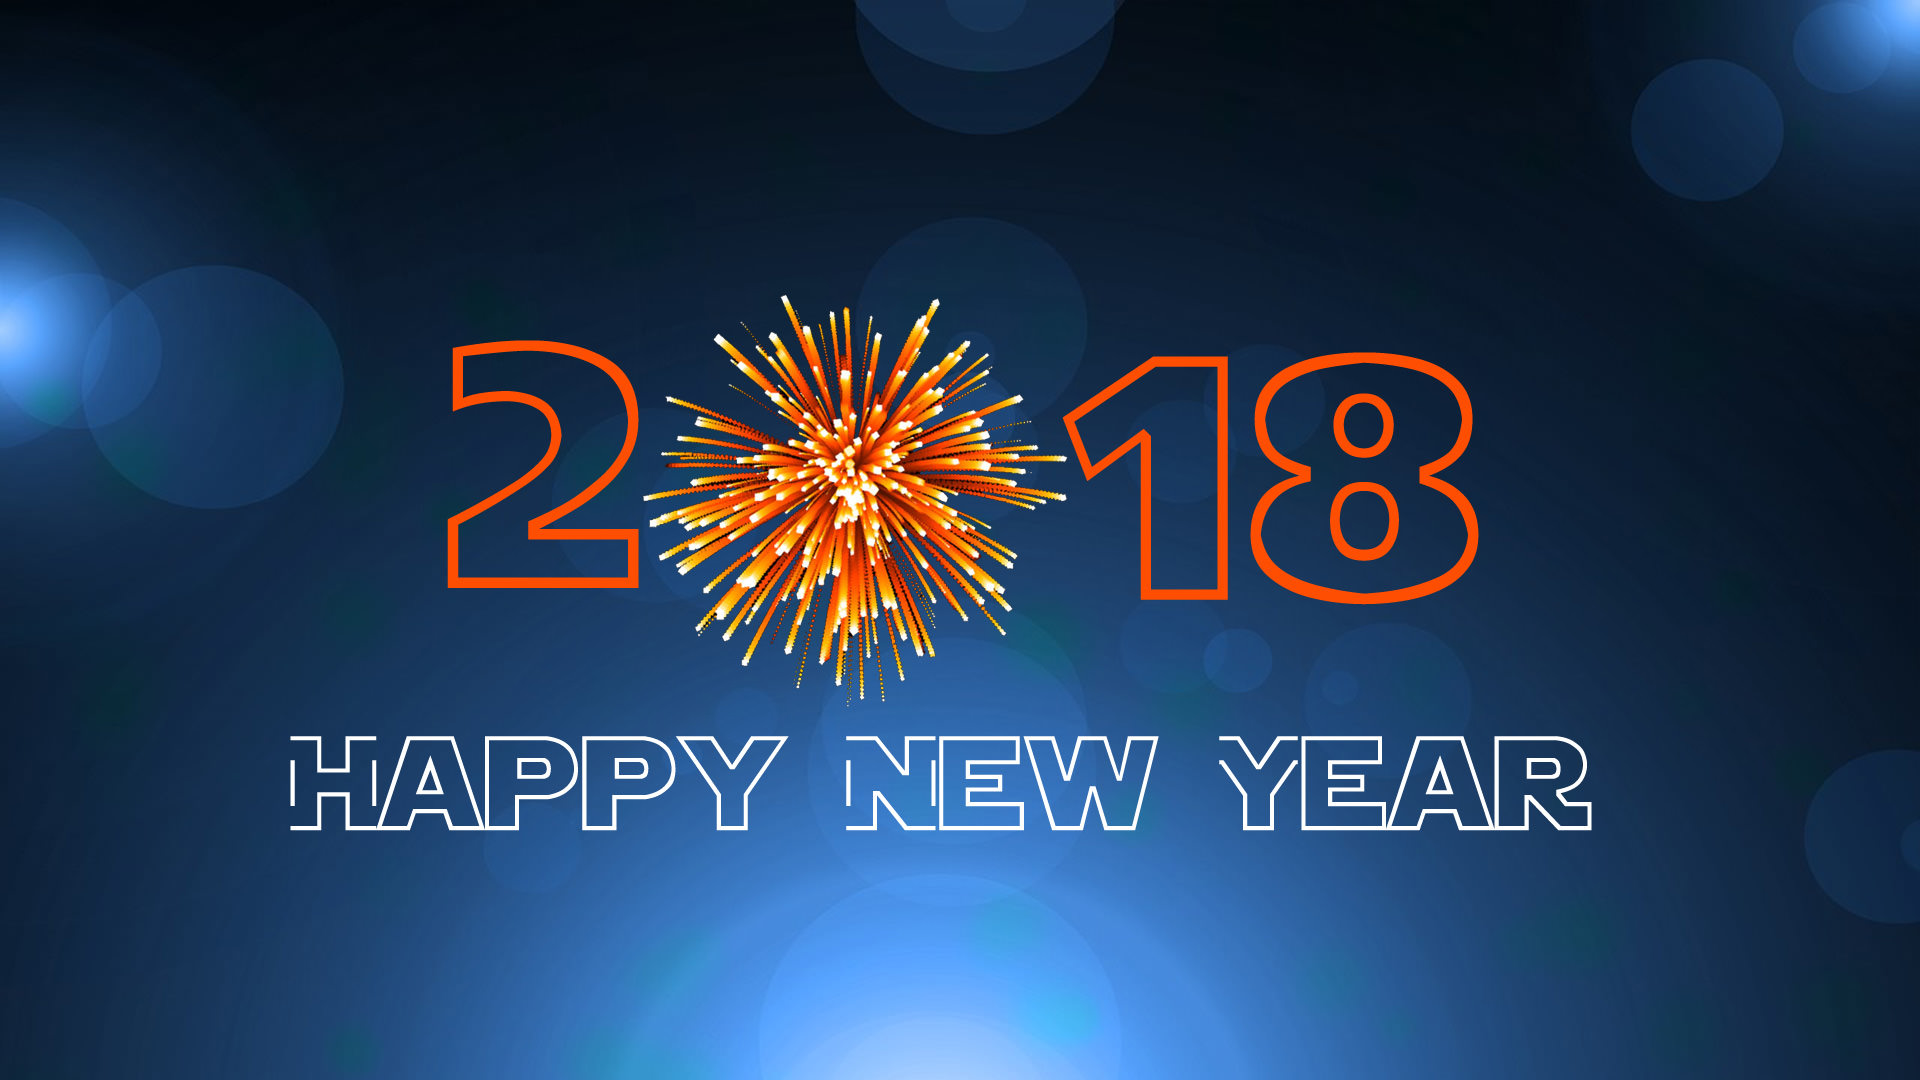 2018 Happy New Year Images for Desktop